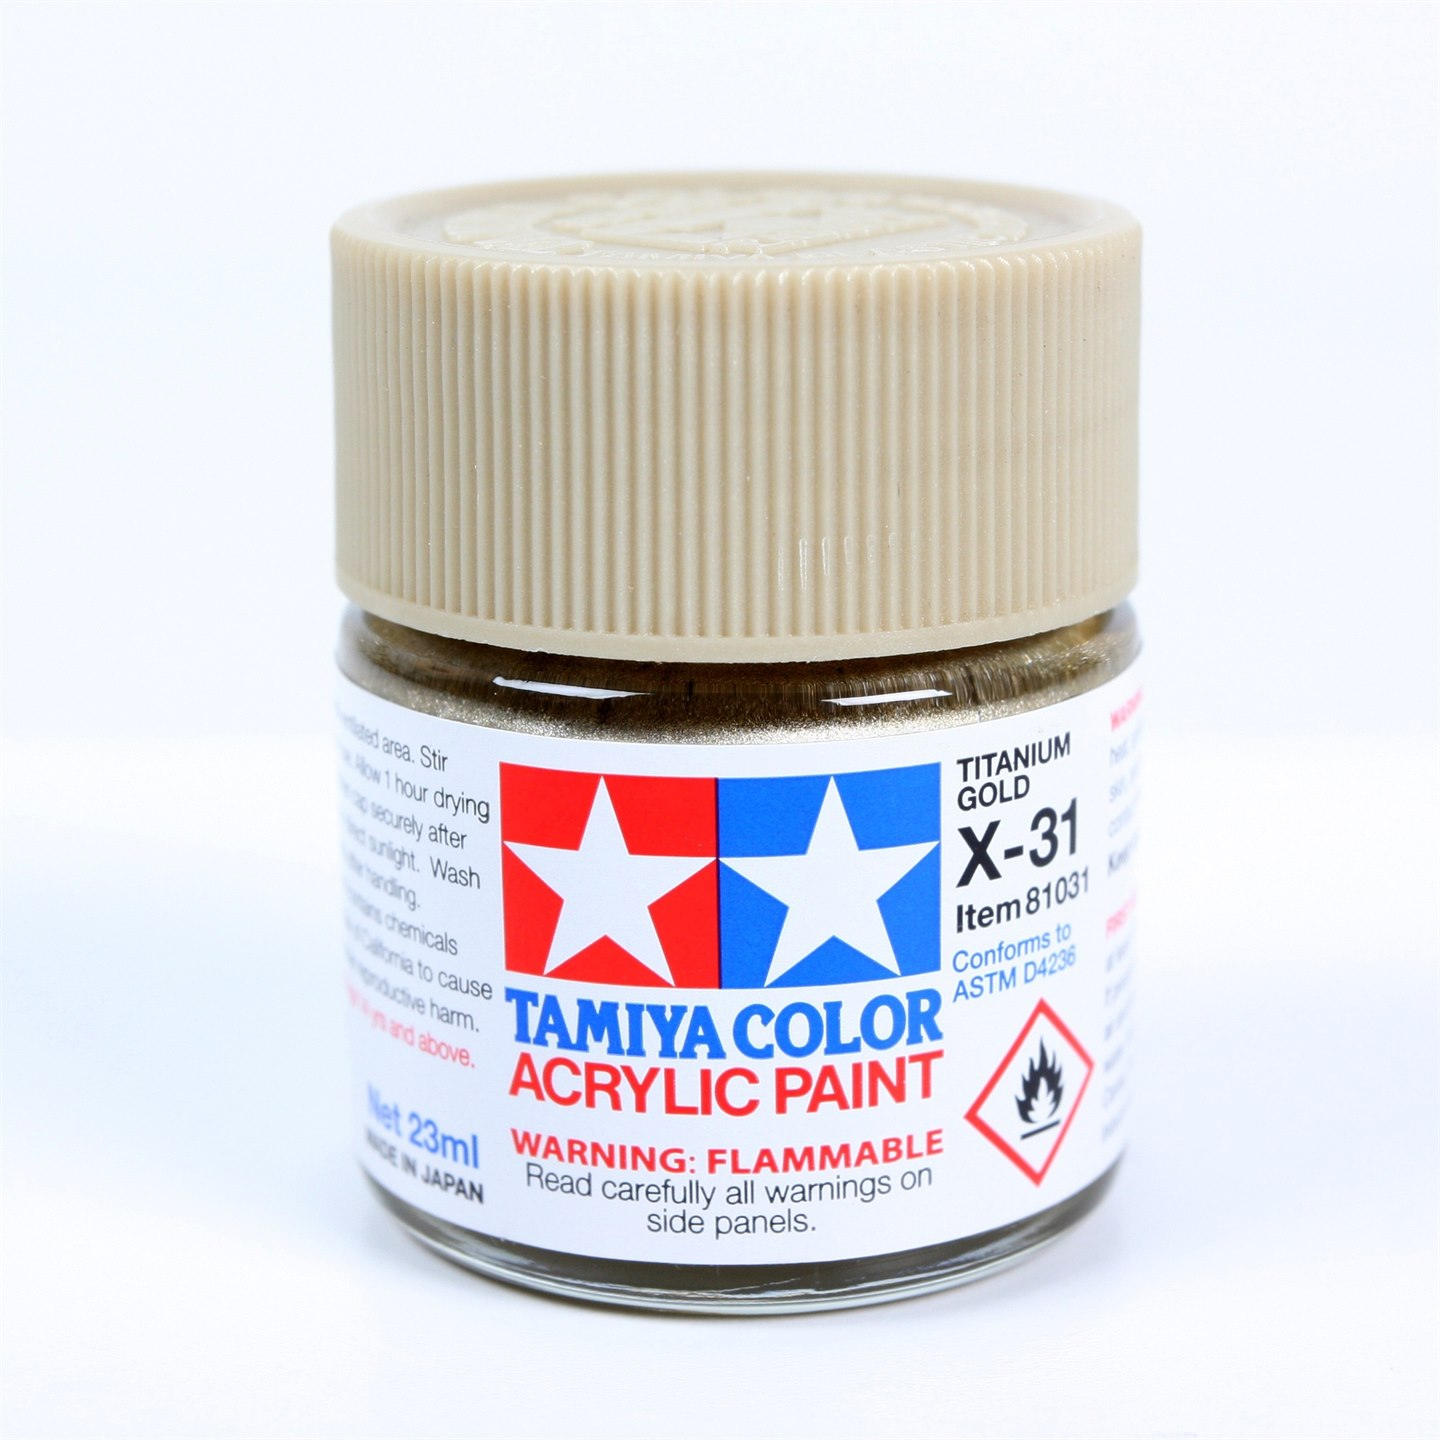 Tamiya Color Acrylic Paint X-31 (Titanium Gold) (23ml)